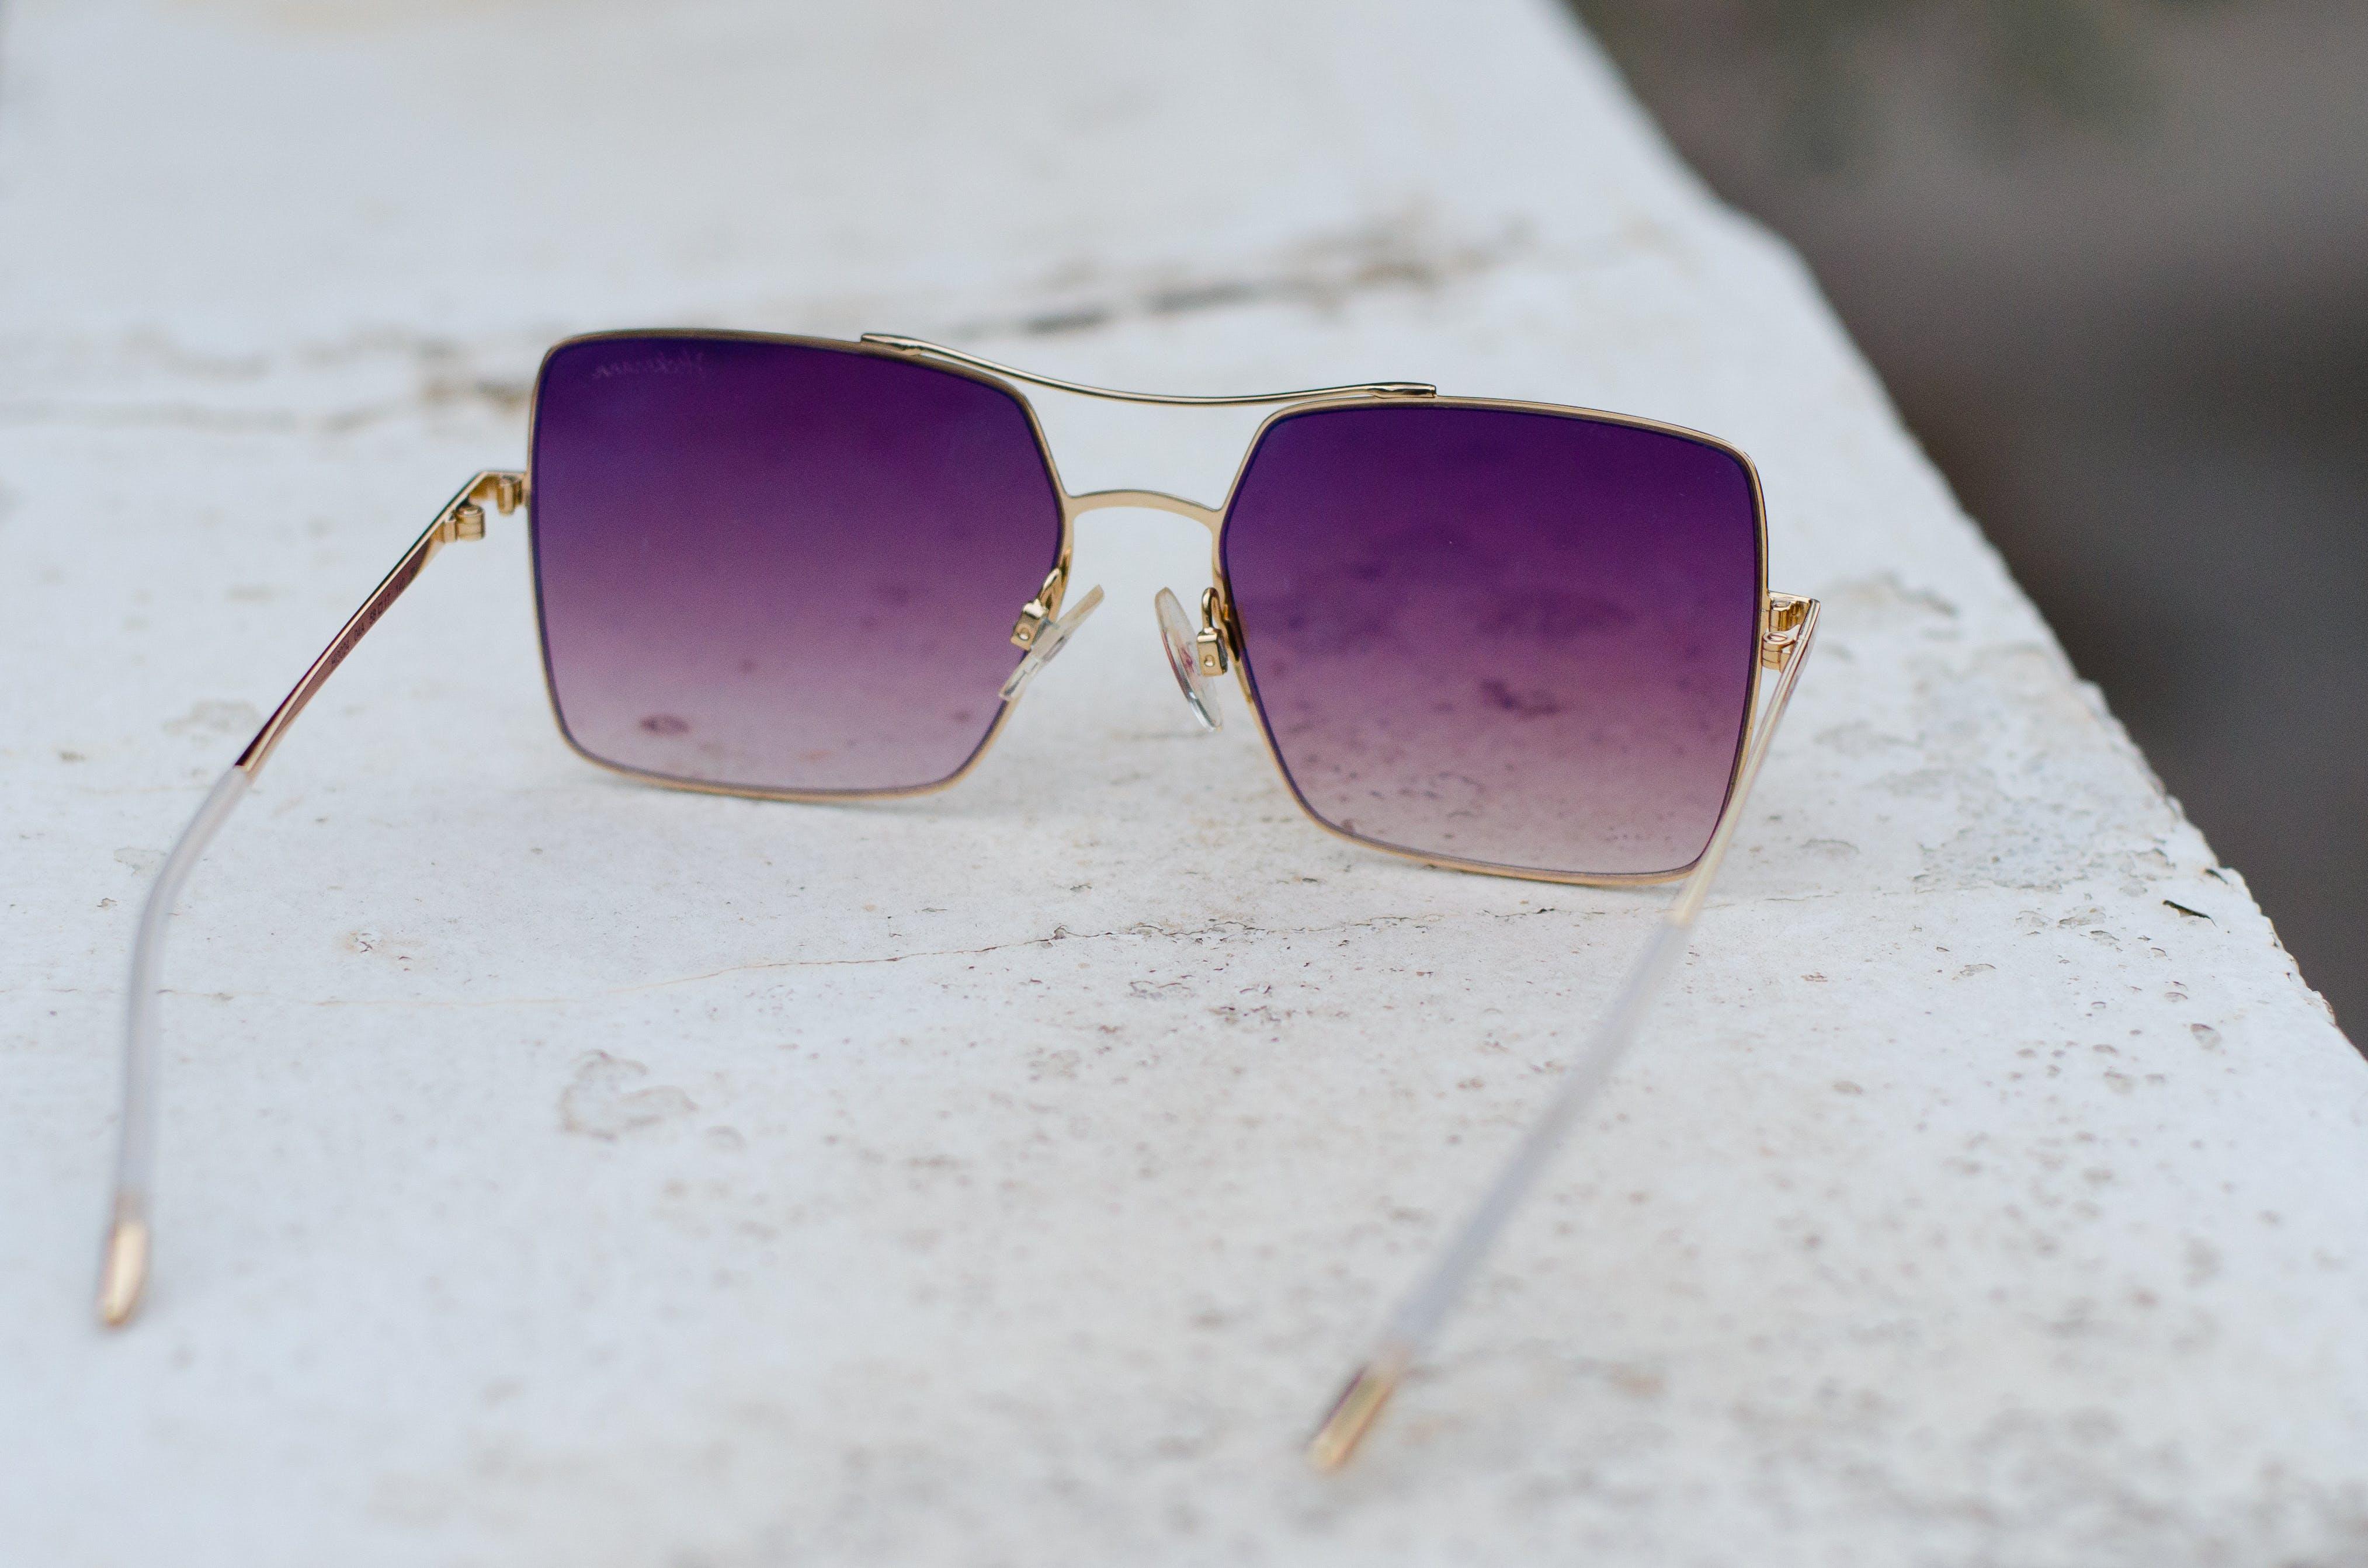 Gold-colored Framed Purple Lens Sunglasses on Gray Surface